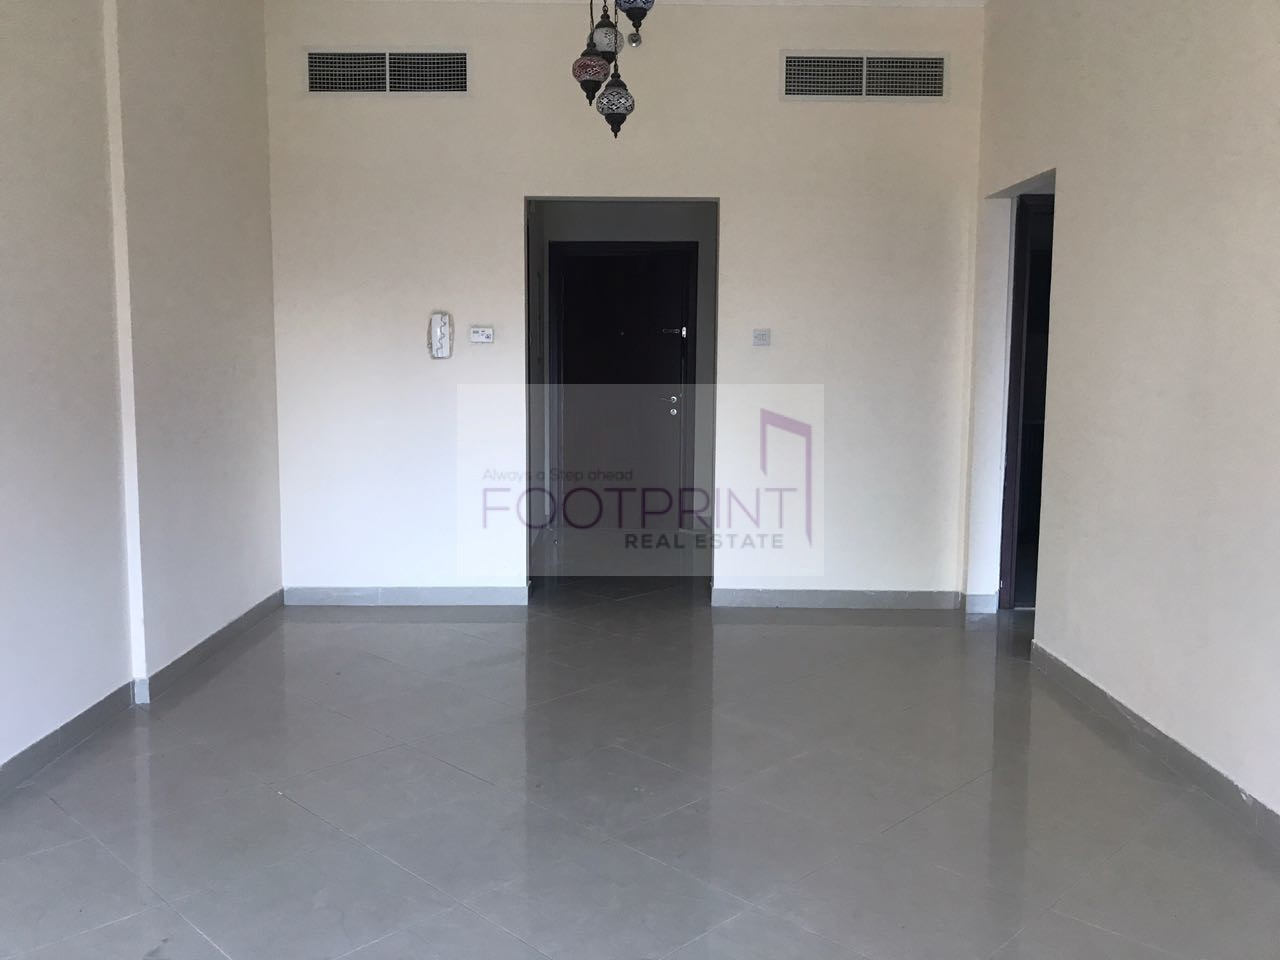 Apartment For Rent | 1BHK | 57,500| DSO